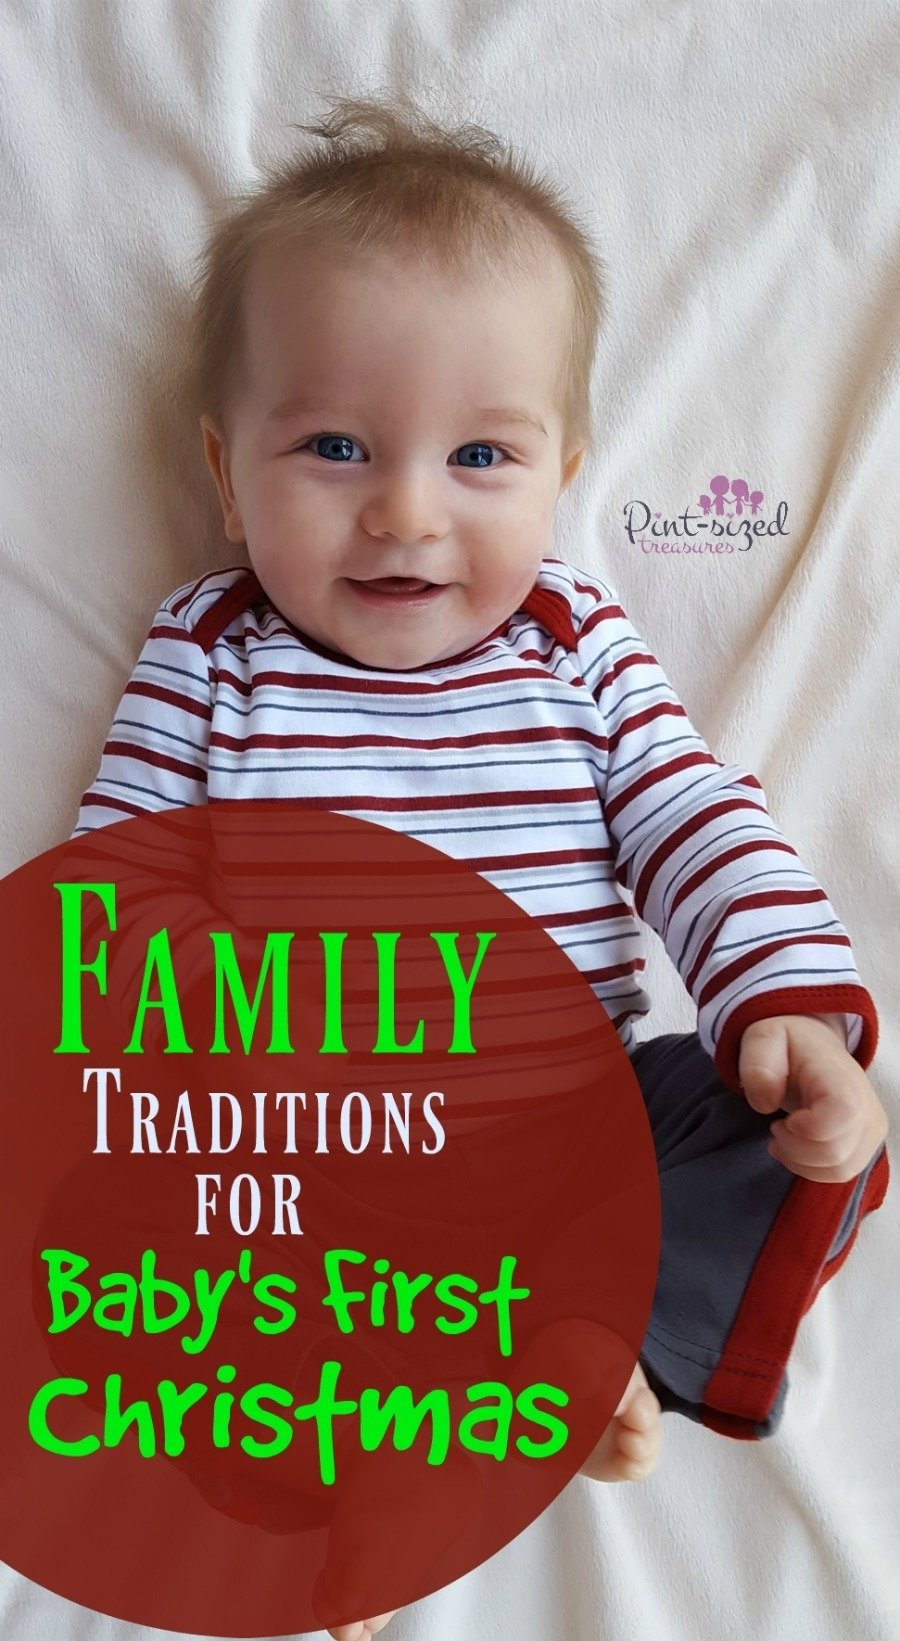 10 Beautiful Family Photo Ideas With Baby family traditions for your babys first christmas c2b7 pint sized treasures 1 2021